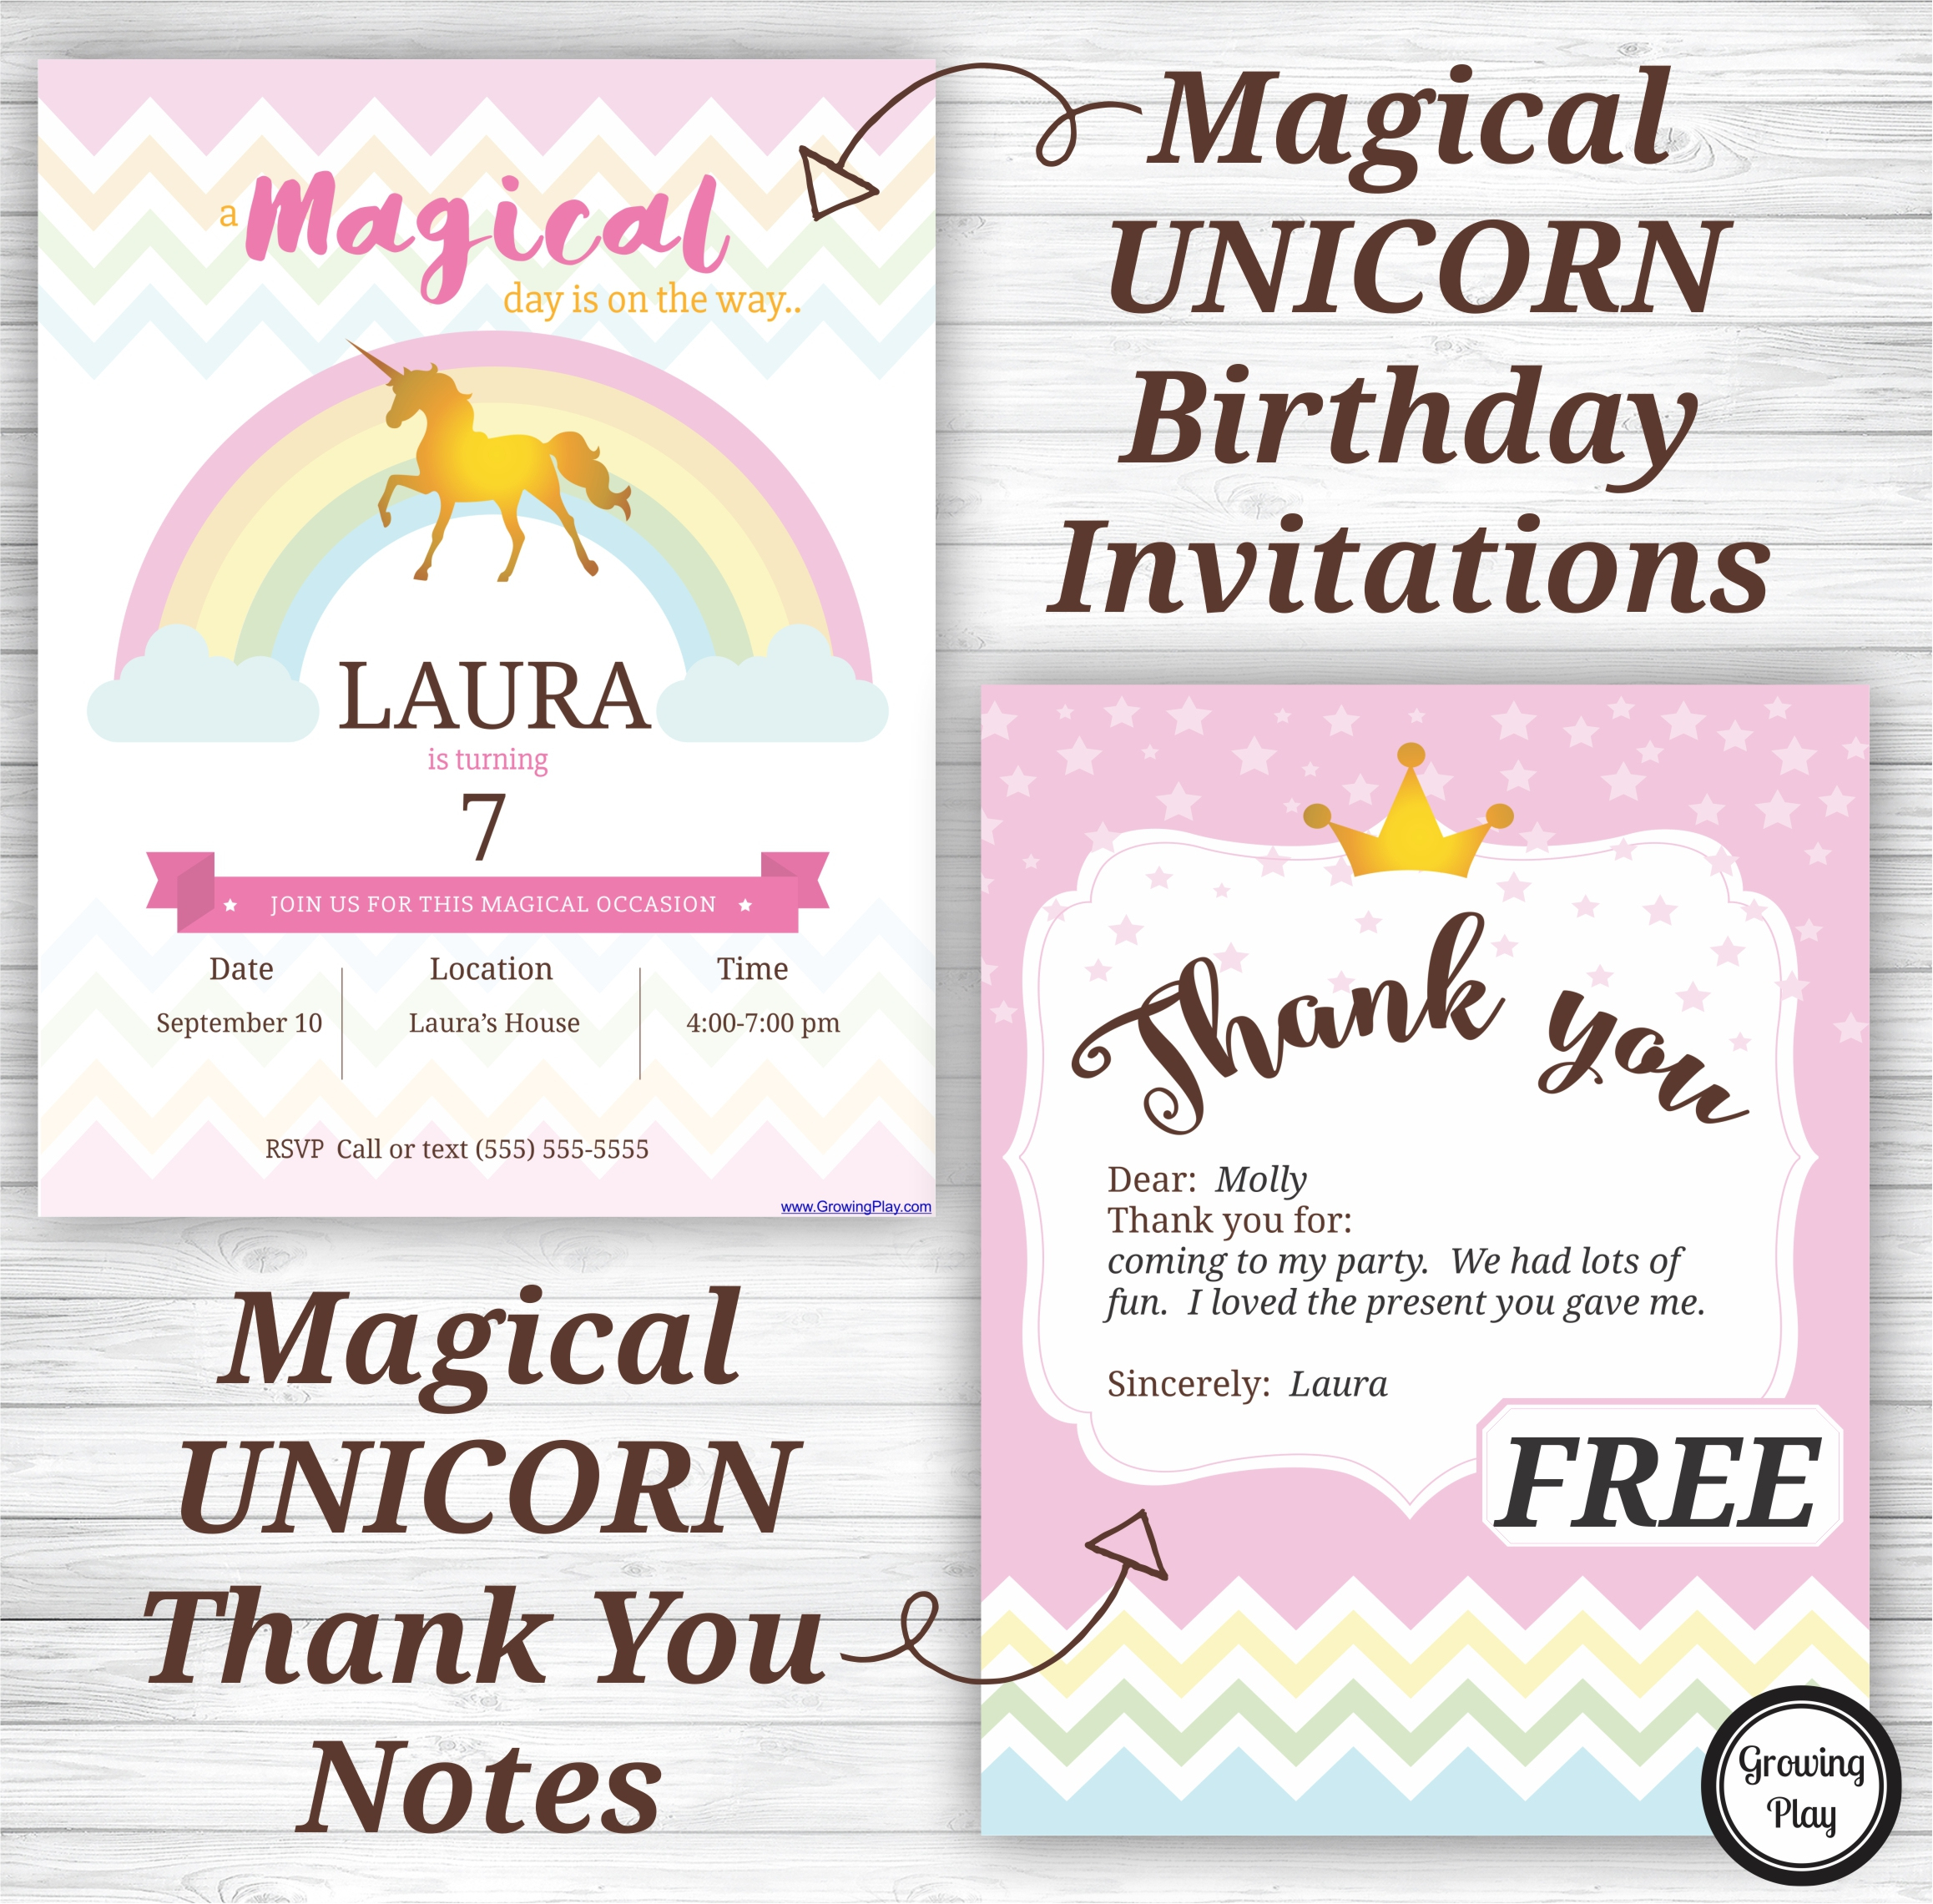 Unicorn Birthday Party Invitations And Thank You Notes - Free - Play Date Invitations Free Printable